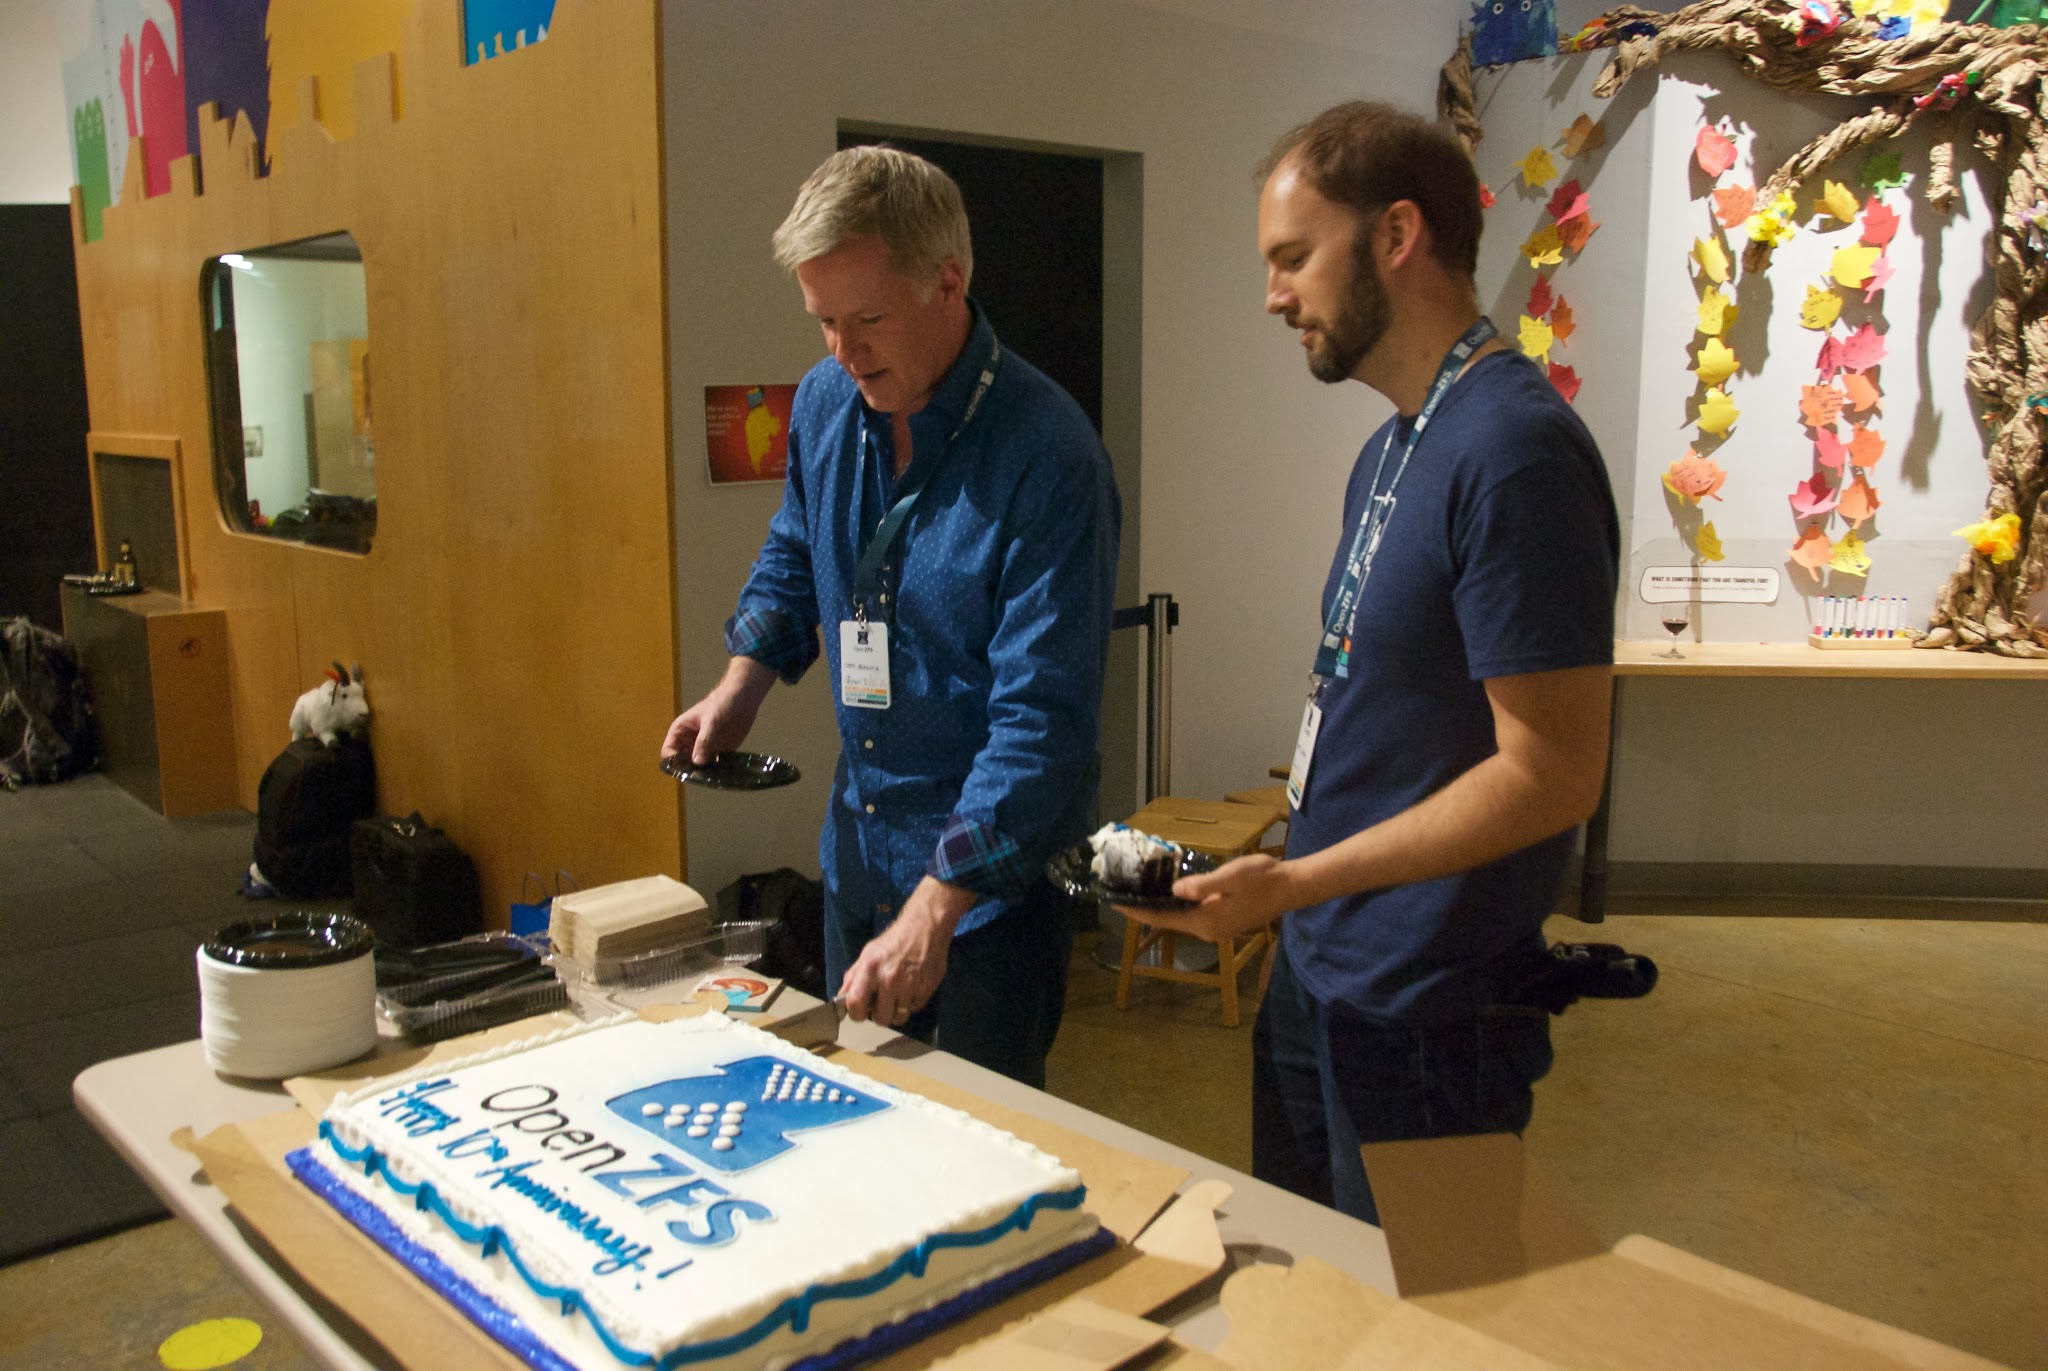 This event was also an opportunity to celebrate 10 years of OpenZFS.